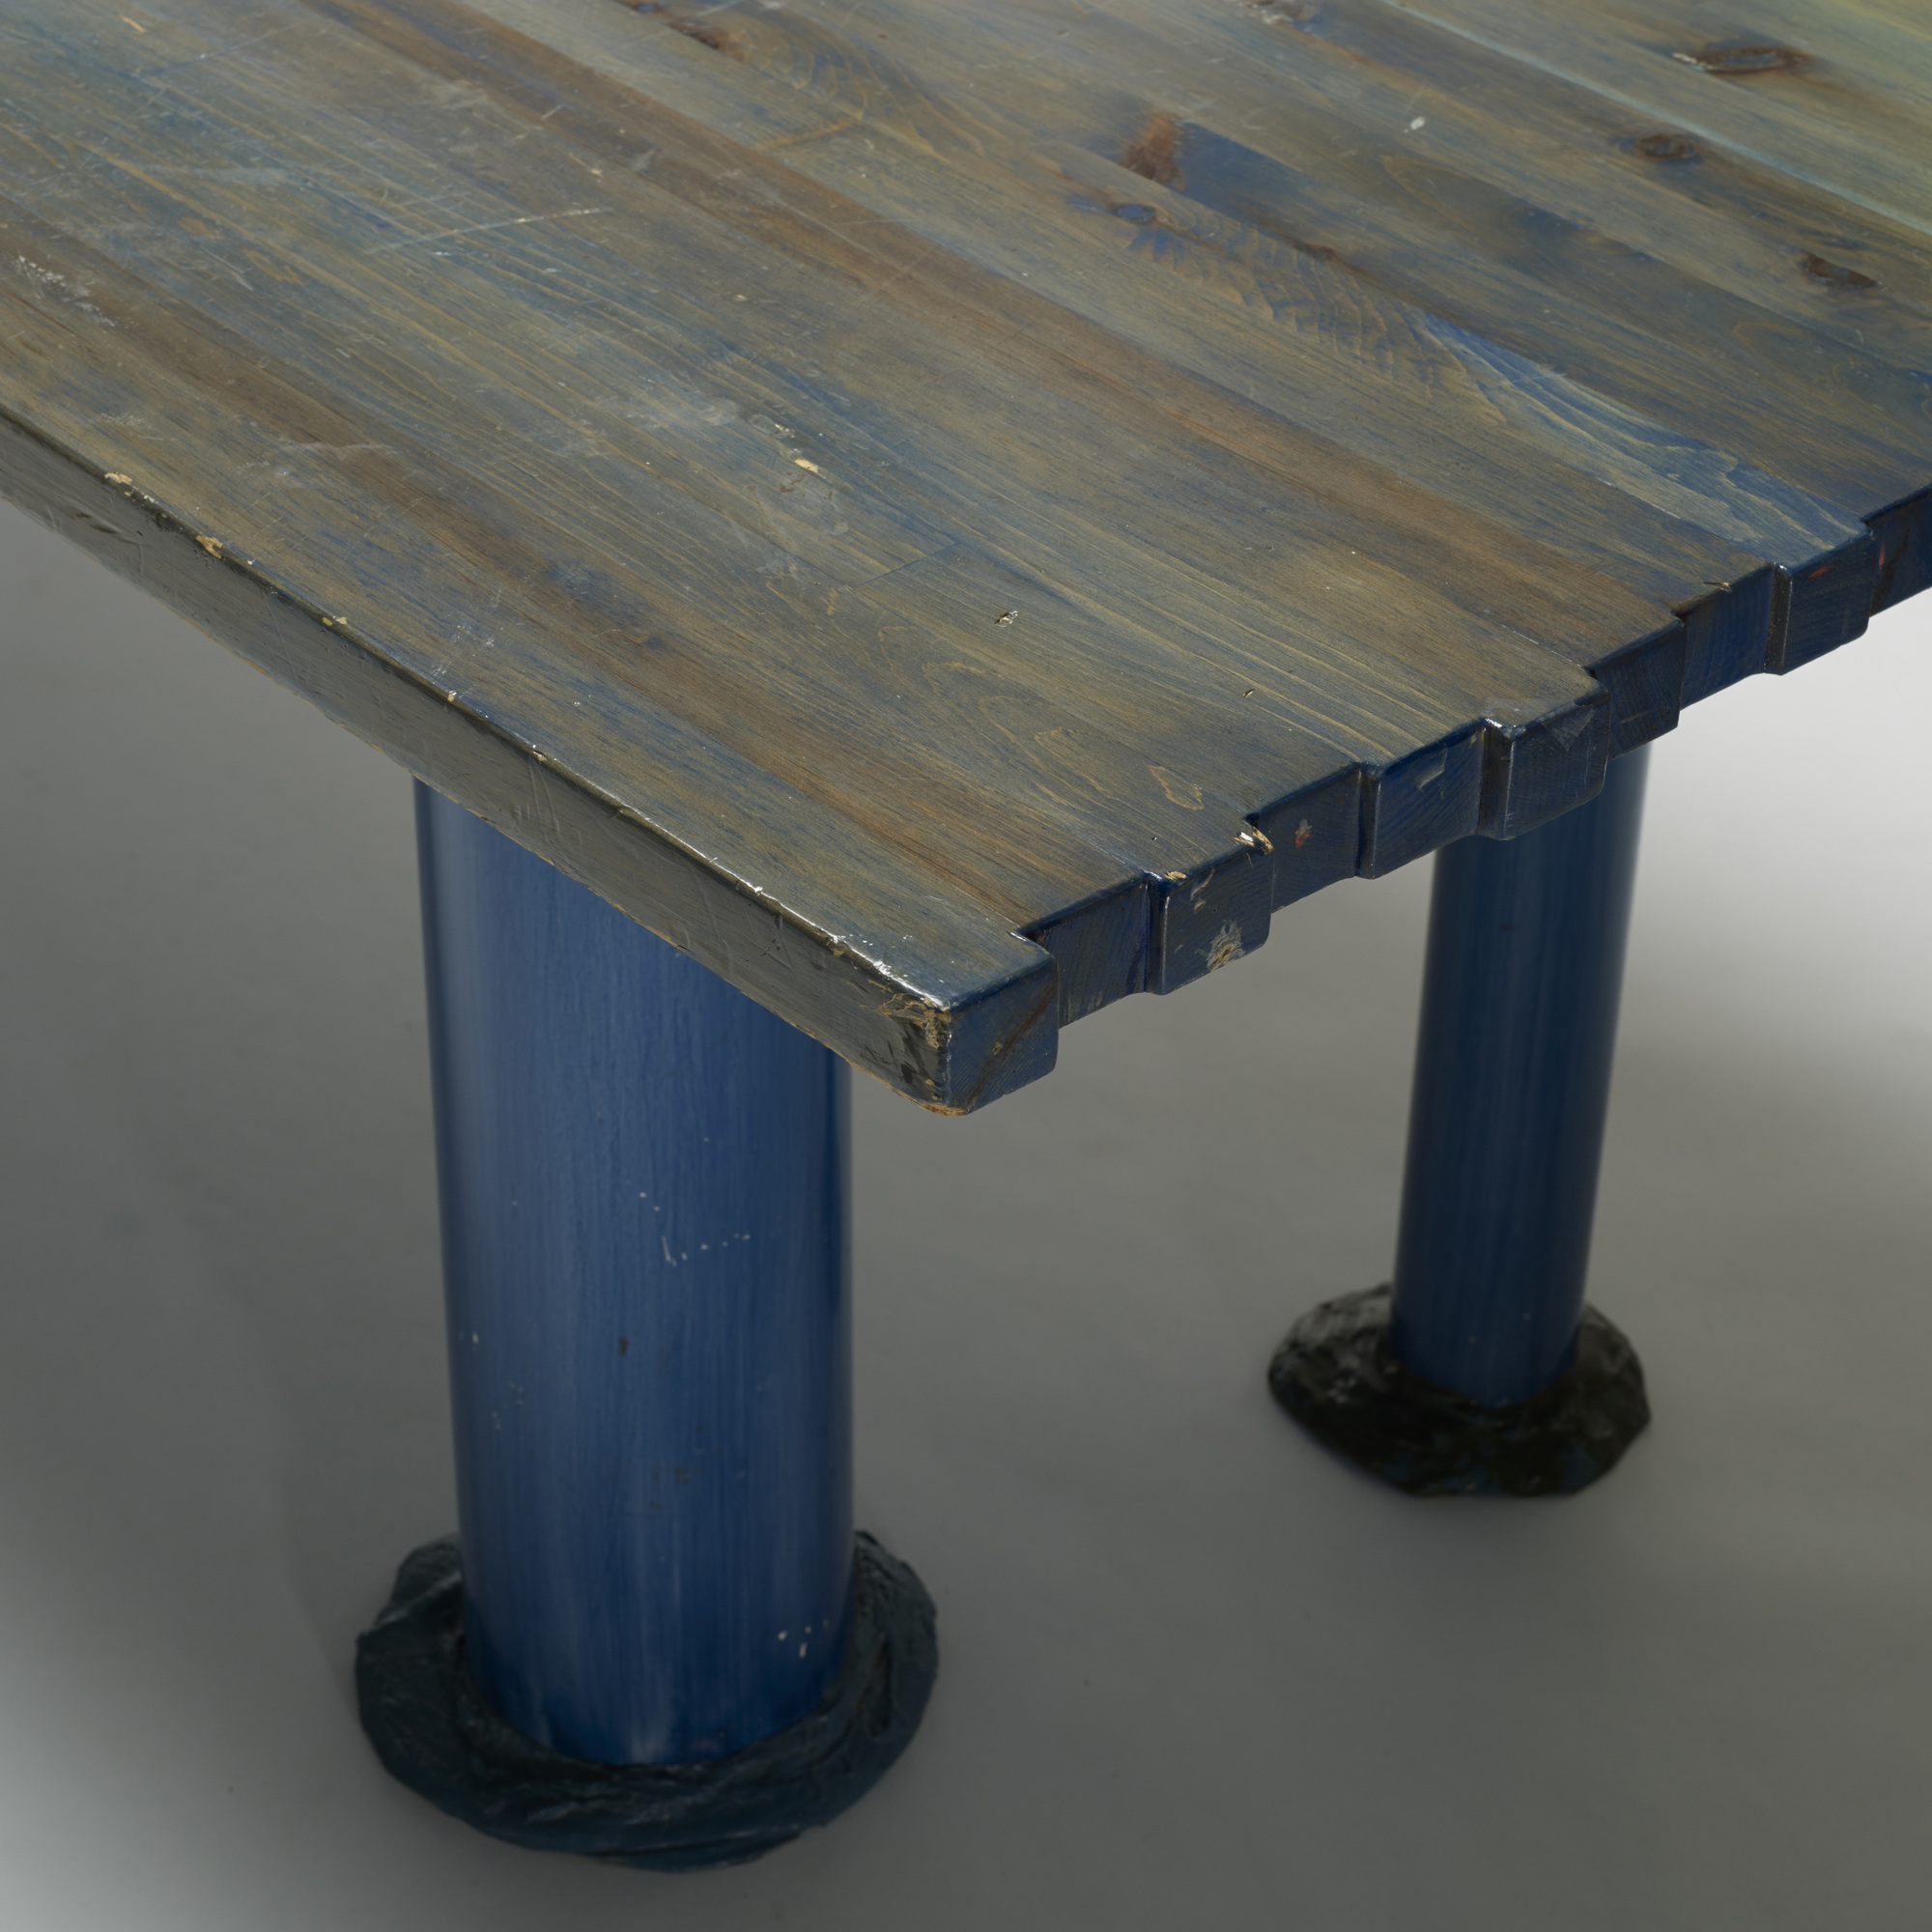 260: Gaetano Pesce / prototype dining table (2 of 2)